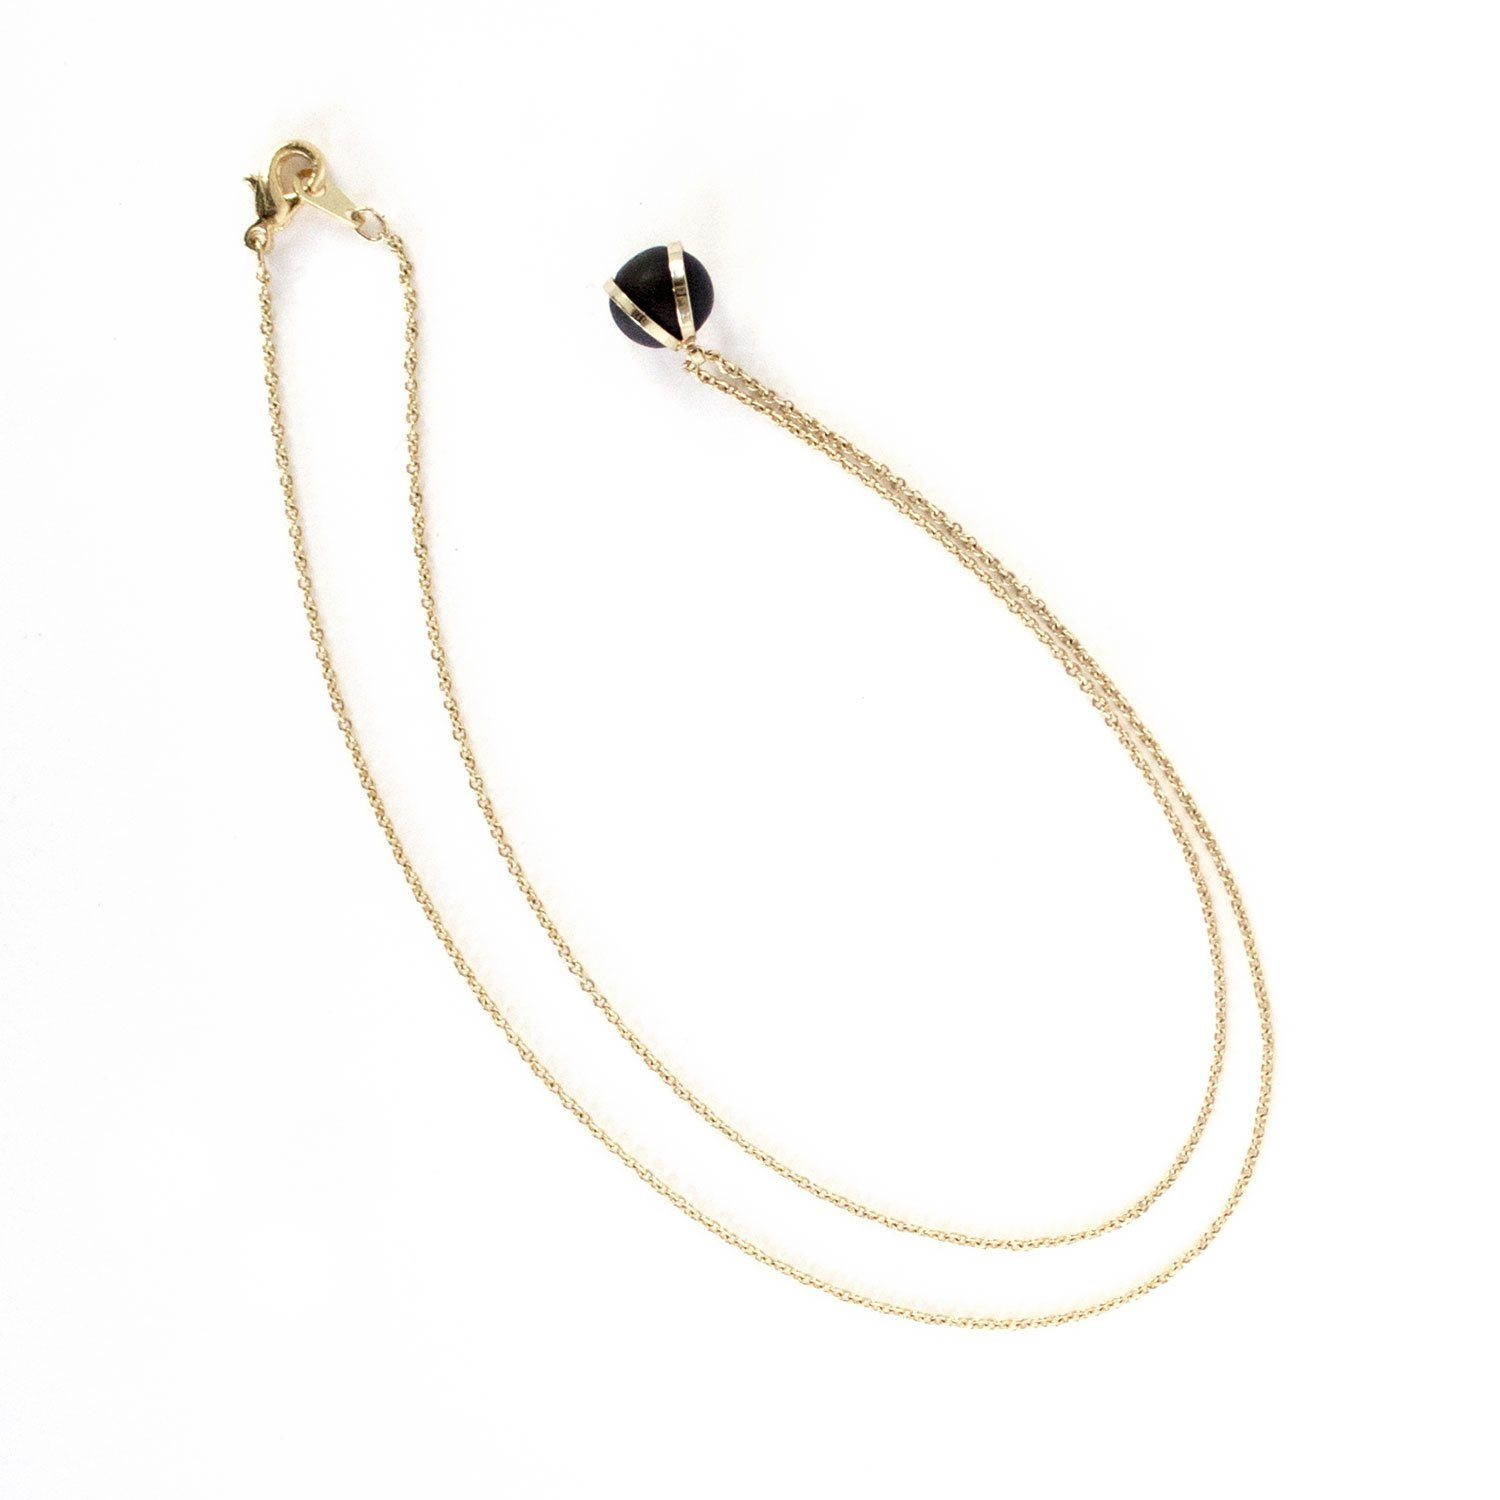 Gold Necklace - Black Ball Charm - Necklaces - 5mm Paper - Naiise